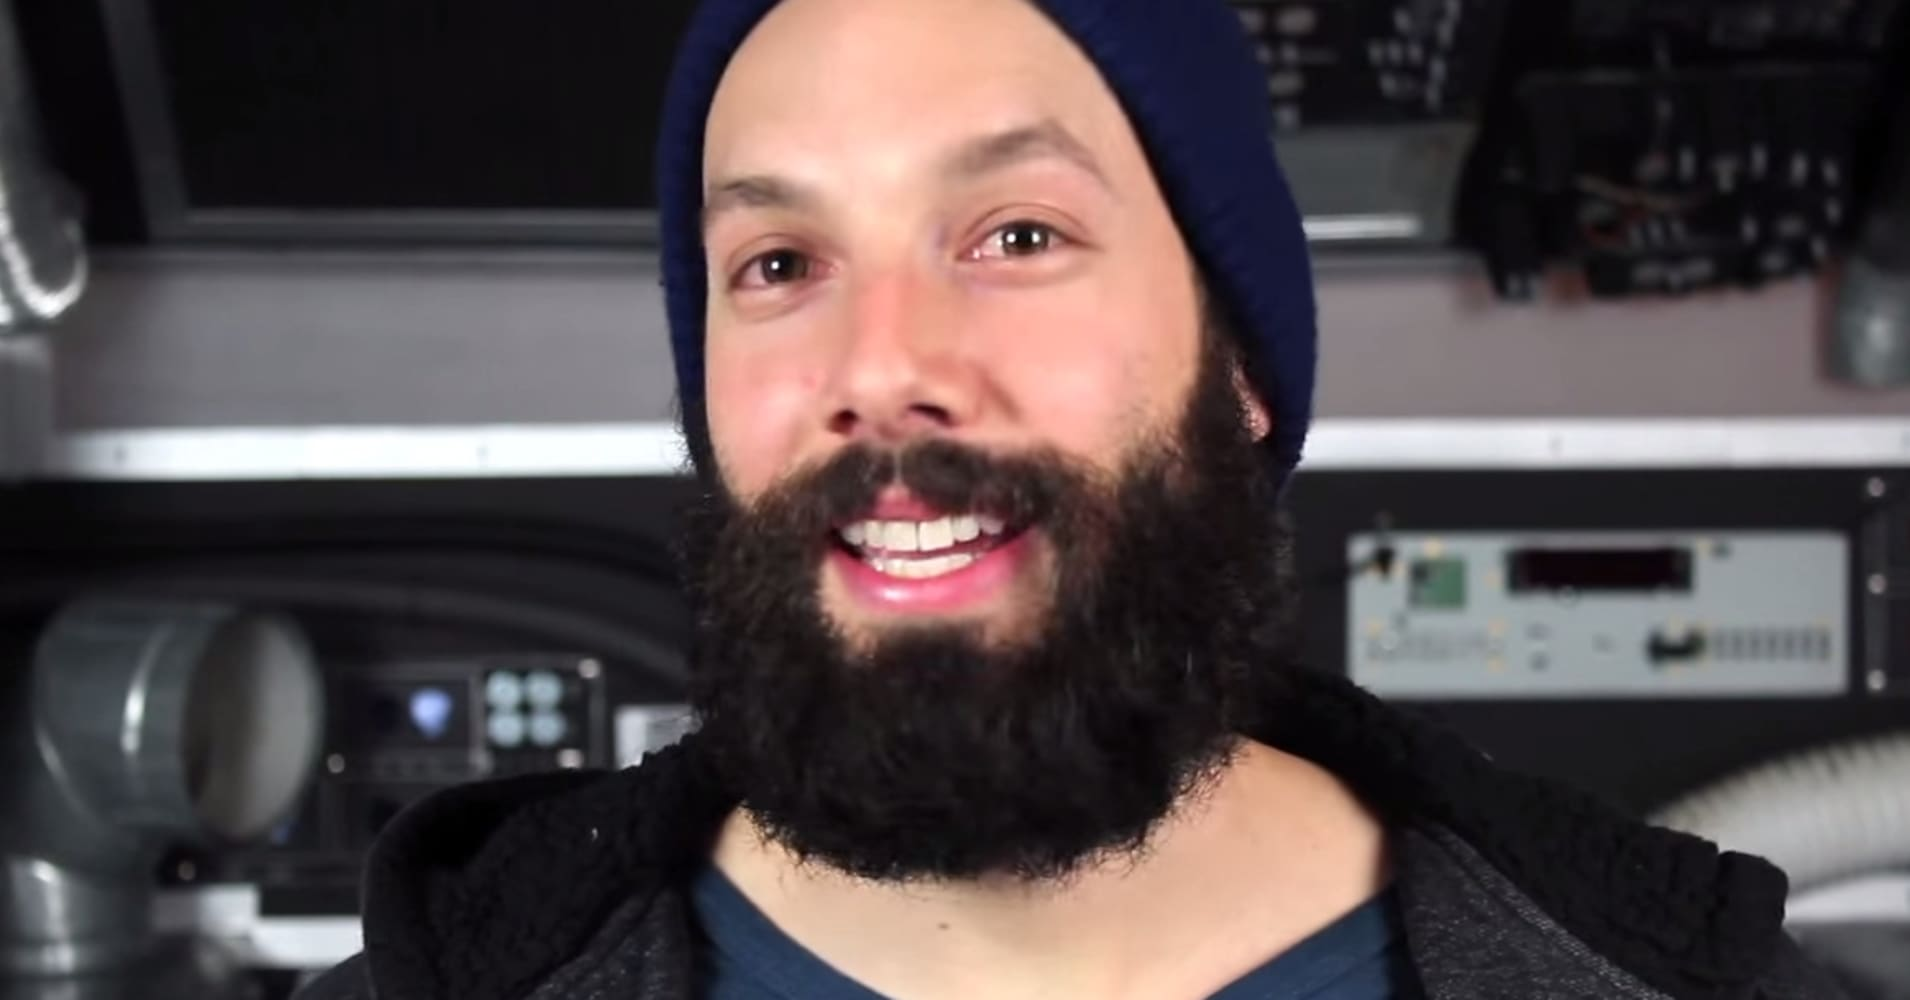 Jack Conte, founder of Patreon